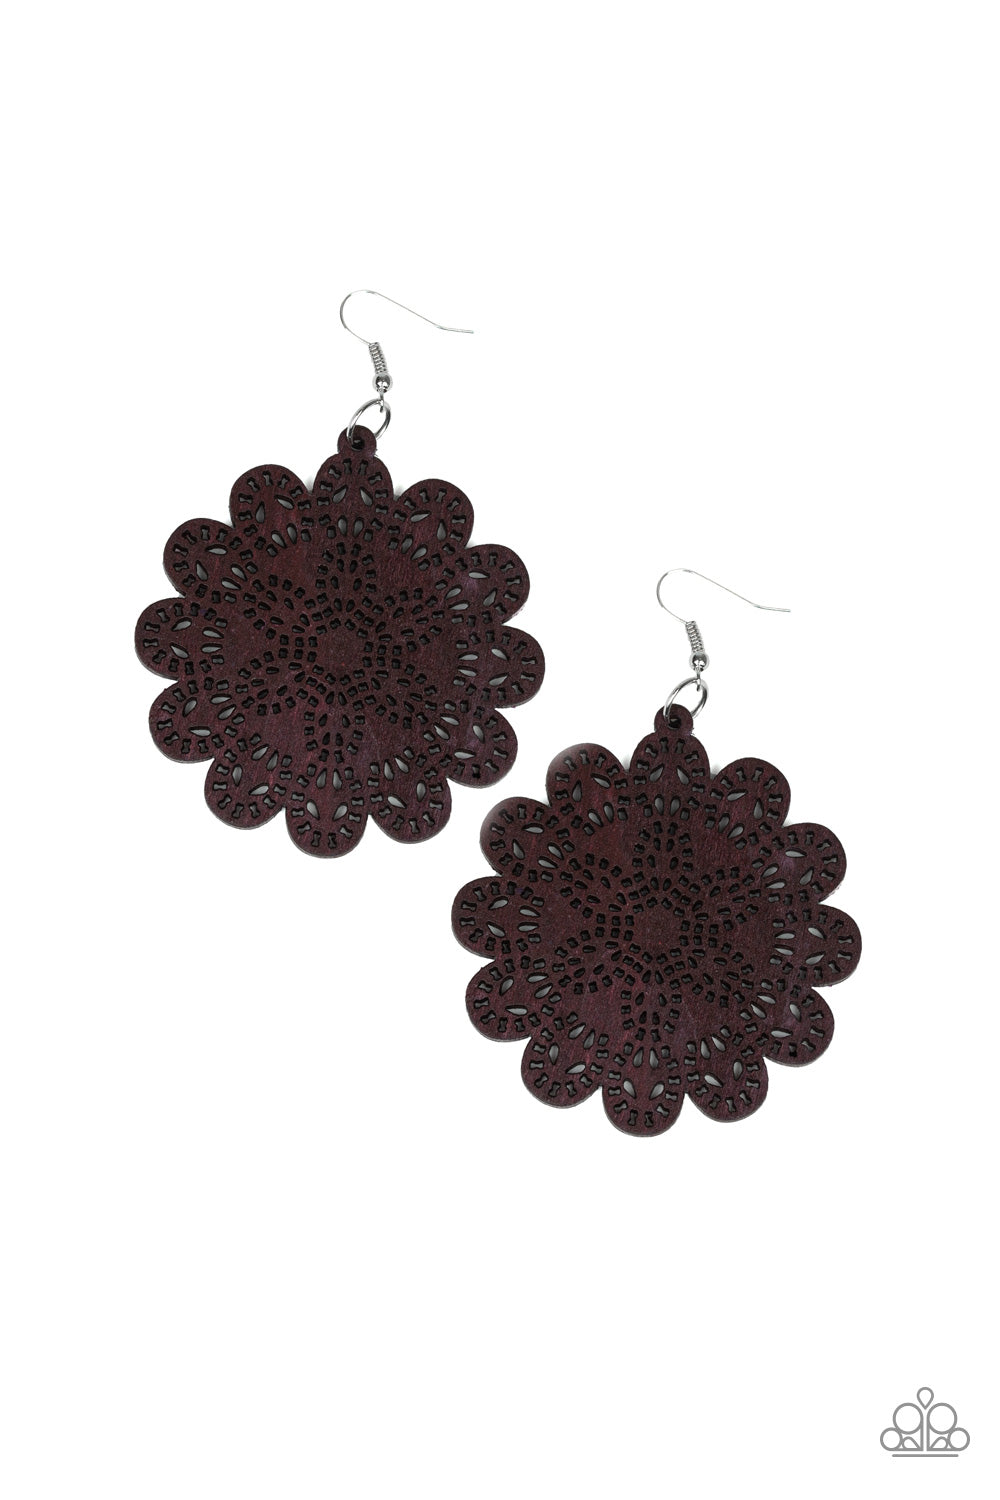 Paparazzi Accessories - Coachella Cabaret - Brown Earrings - JMJ Jewelry Collection